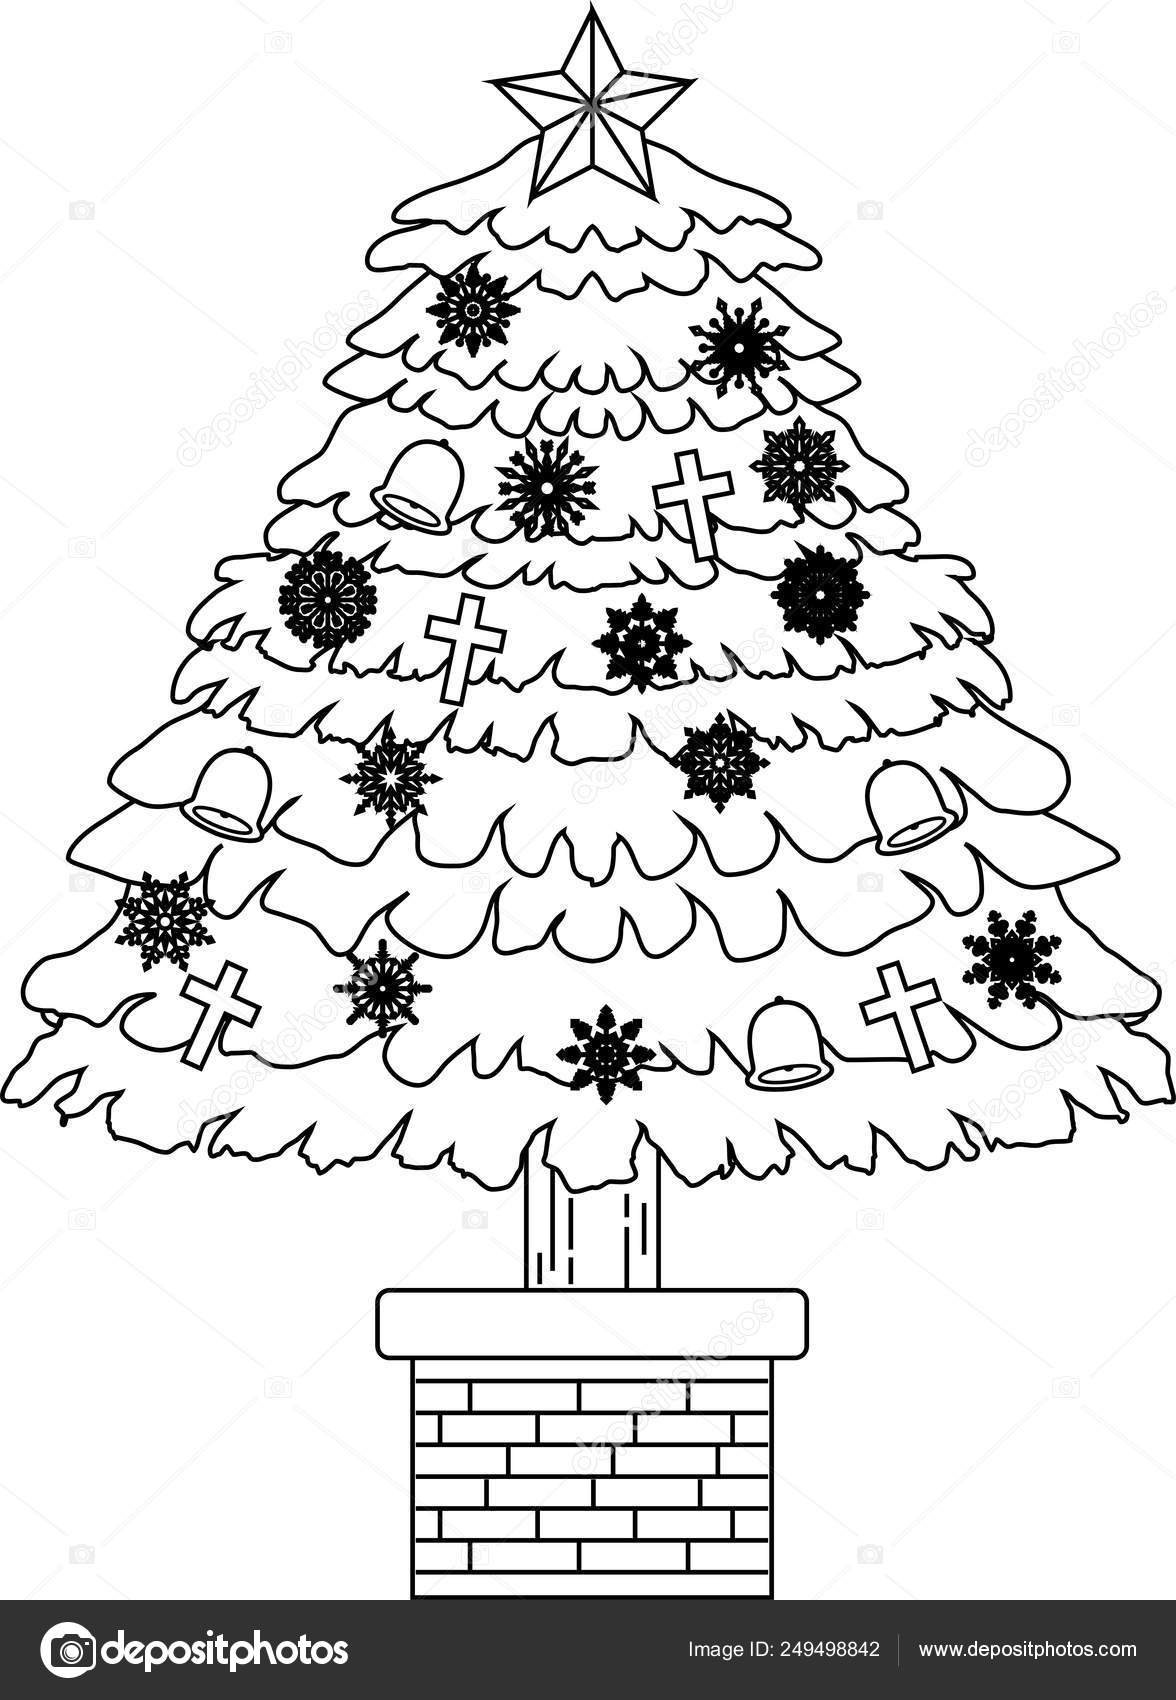 Christmas Tree Outline.Luxuriously Decorated Christmas Tree Outline Stock Vector